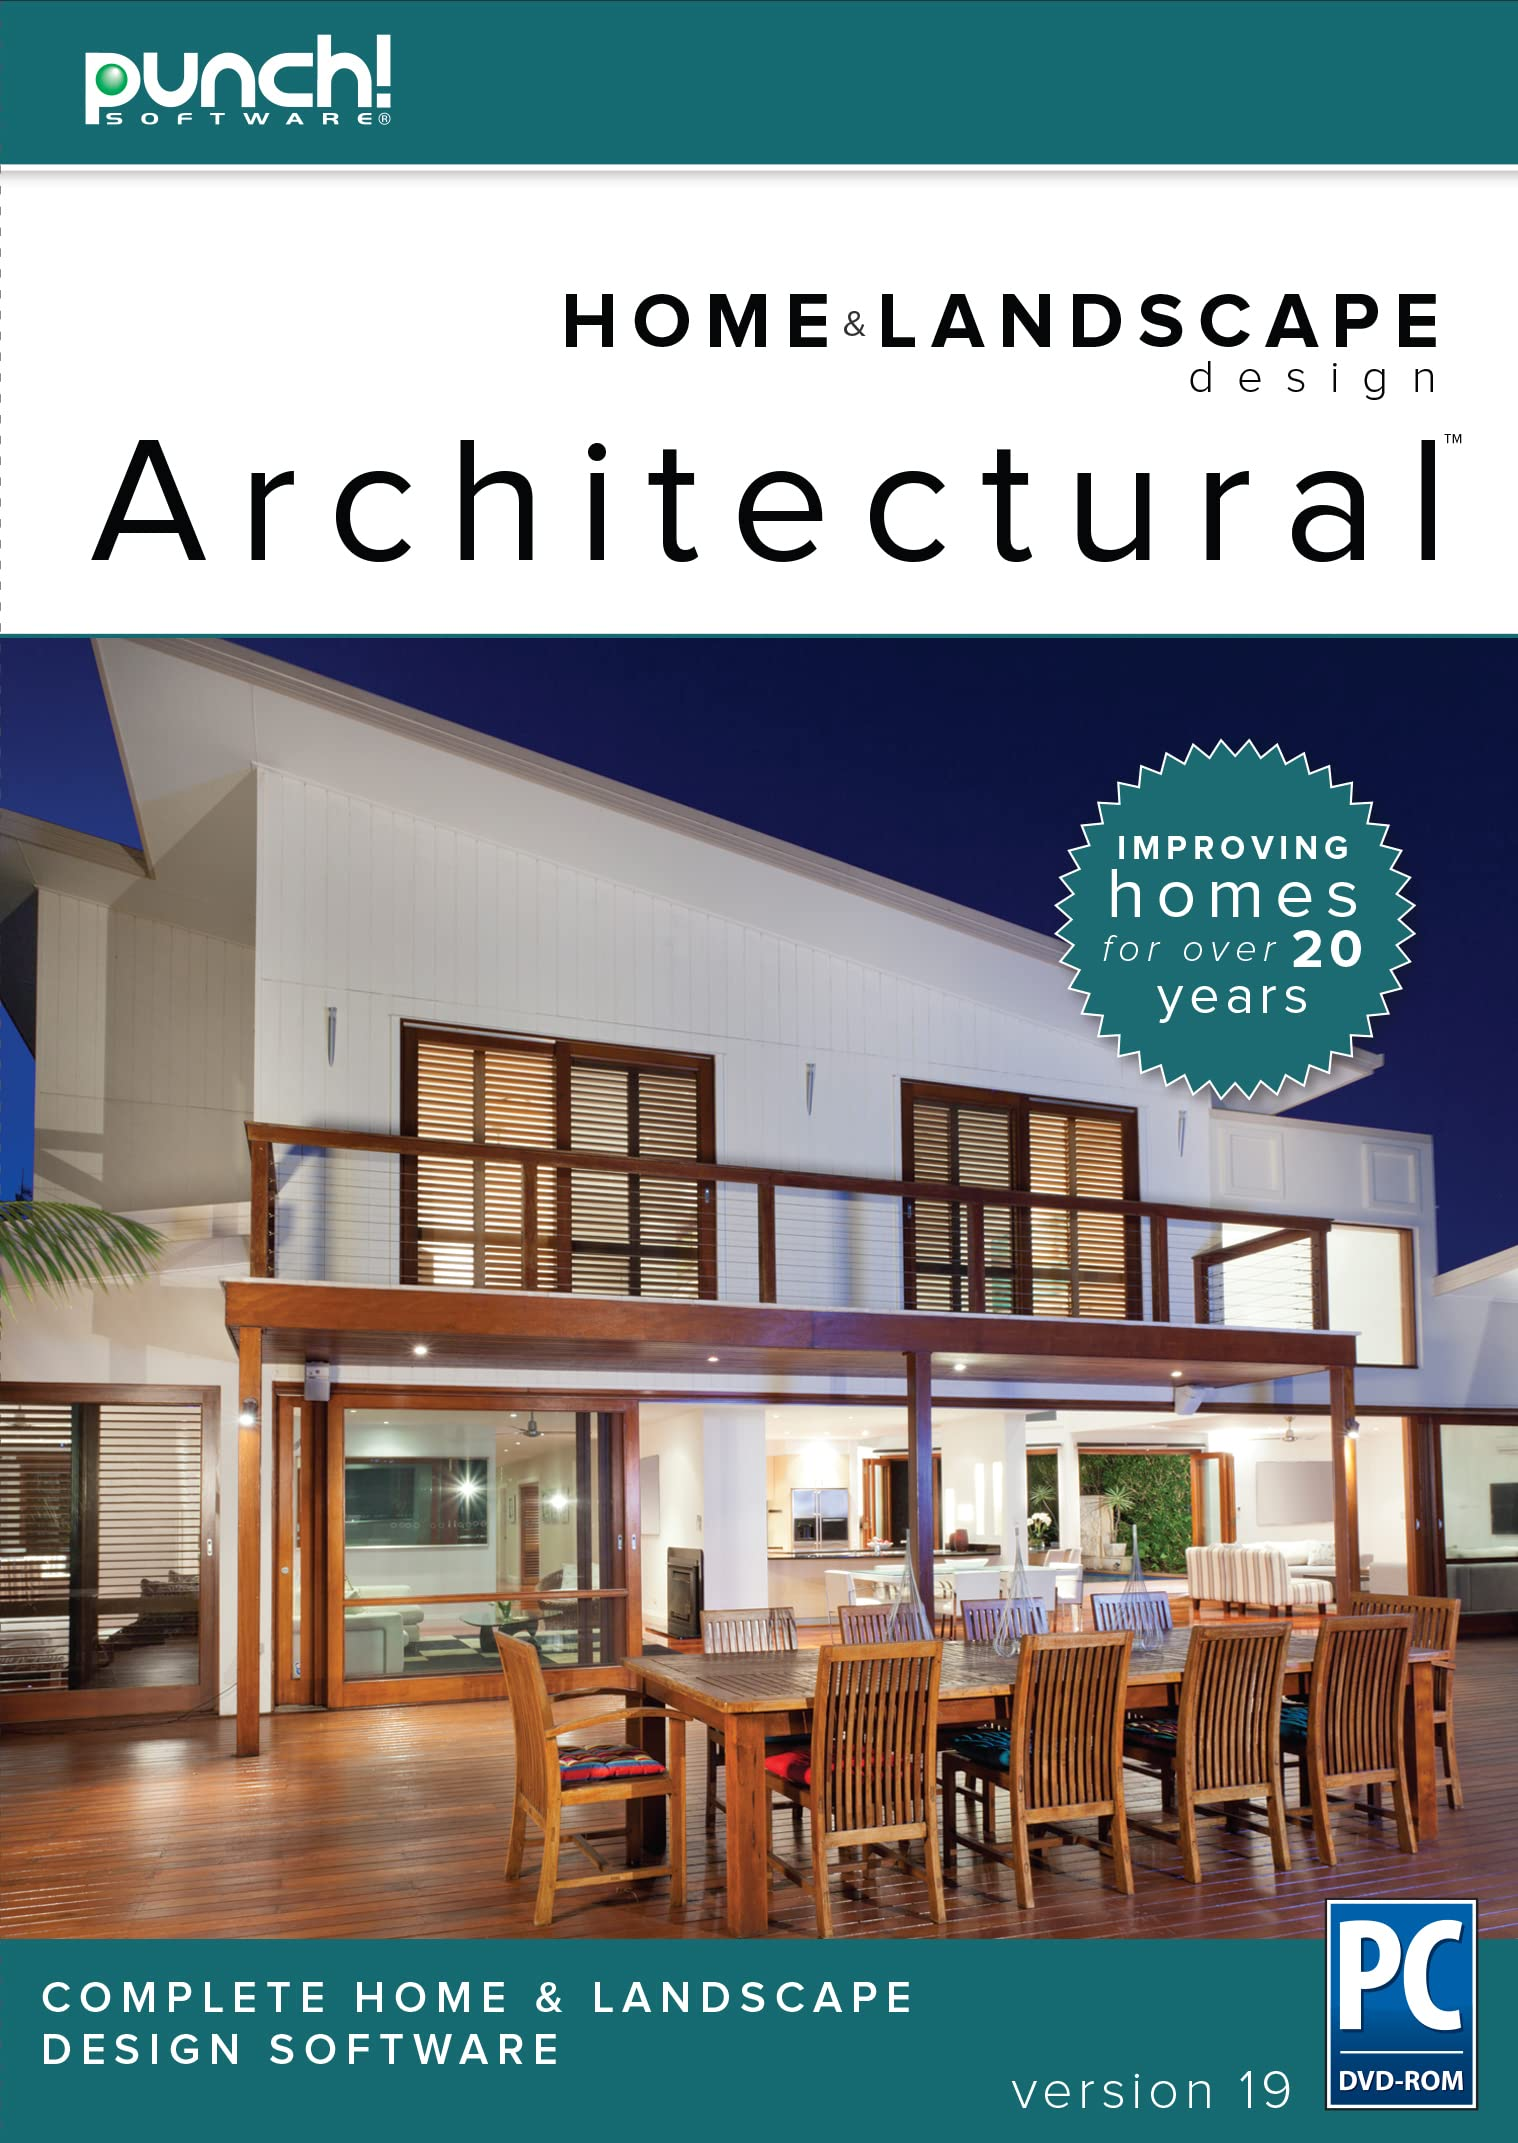 Amazon Com Punch Home Landscape Design Architectural Series V19 Home Design Software For Windows Pc Download Software